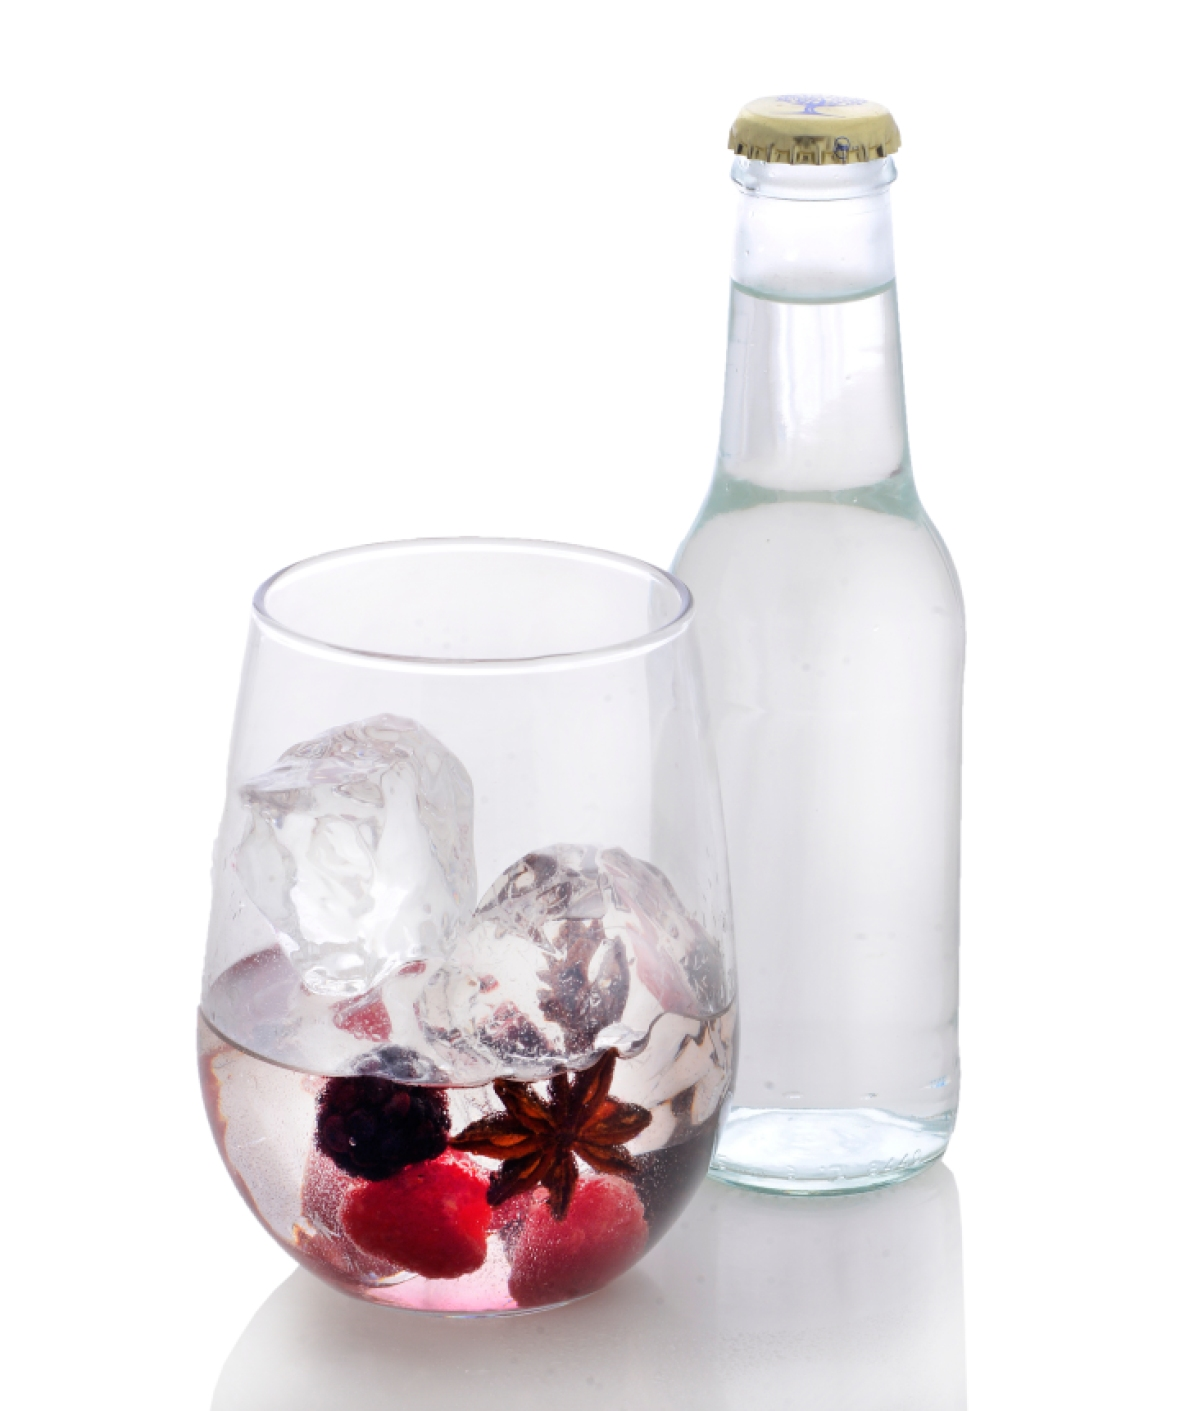 berries & spice g&t